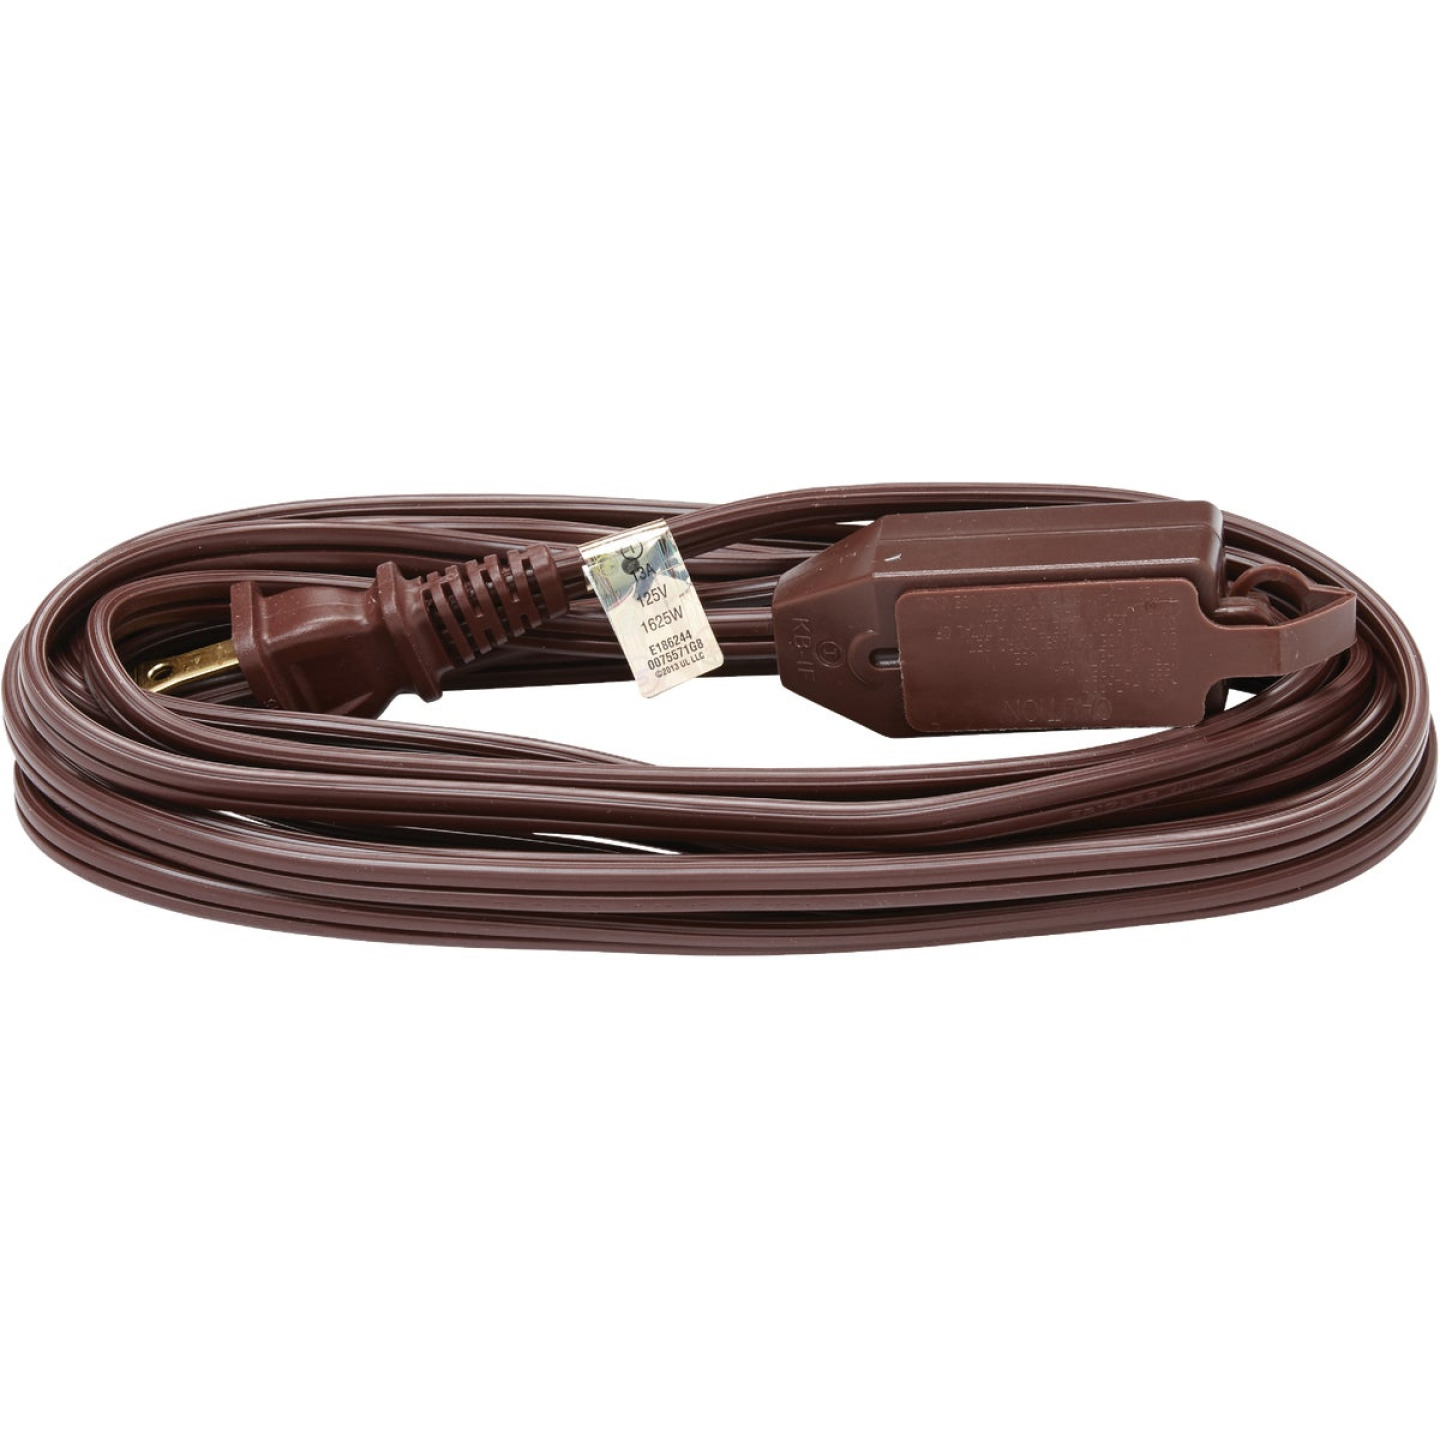 Do it Best 15 Ft. 16/2 Brown Cube Tap Extension Cord Image 2